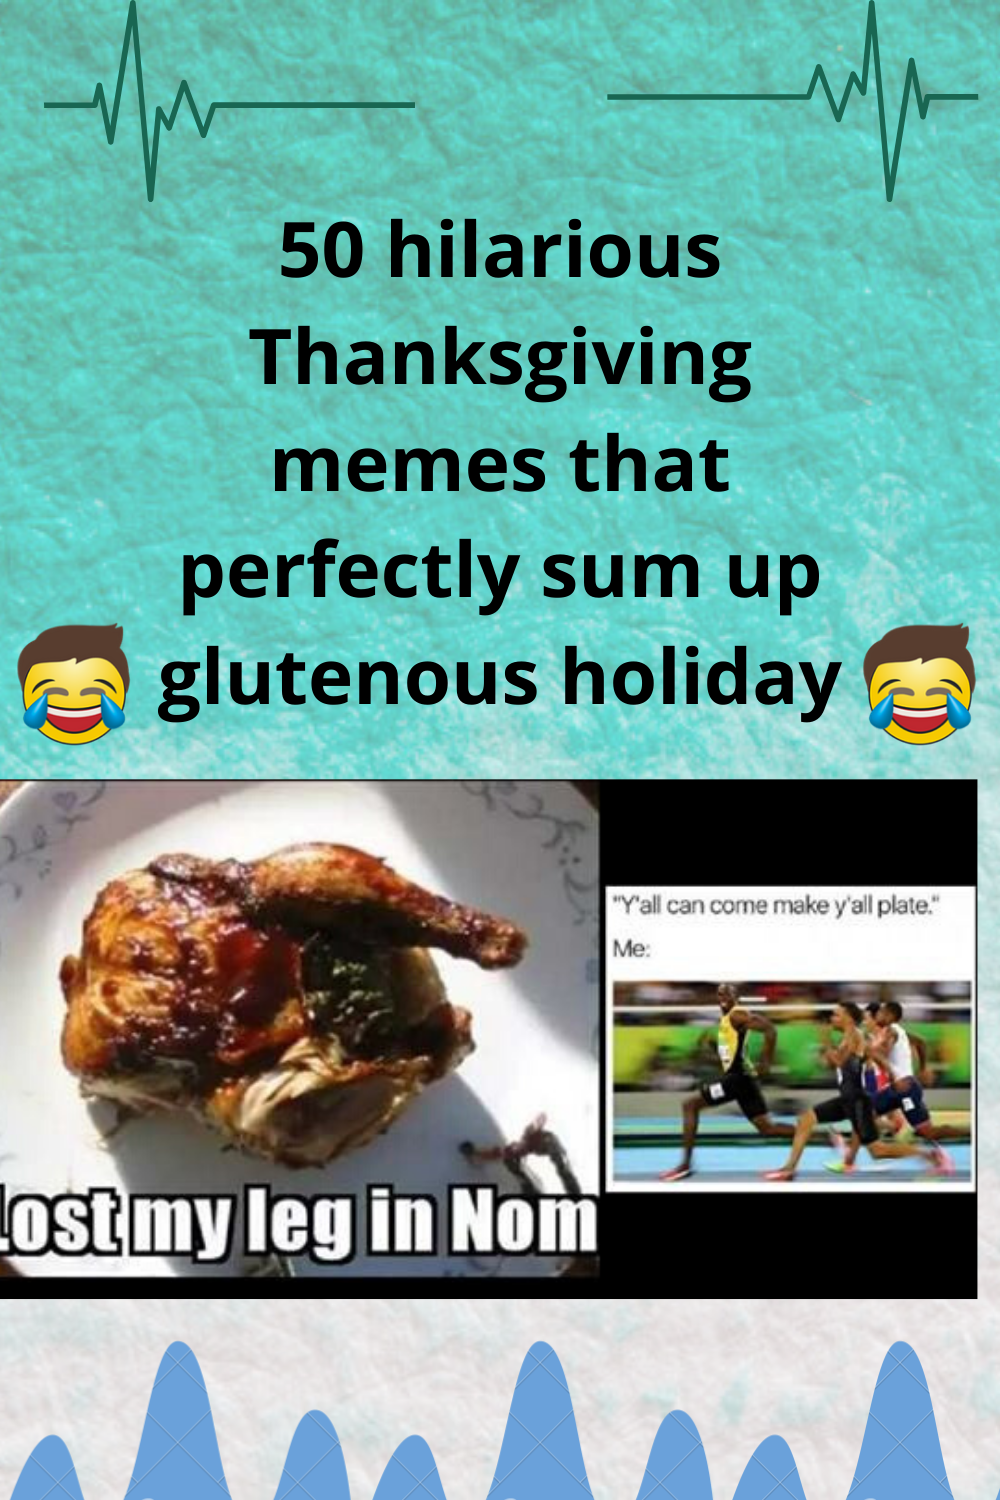 50 hilarious Thanksgiving memes that perfectly sum up the